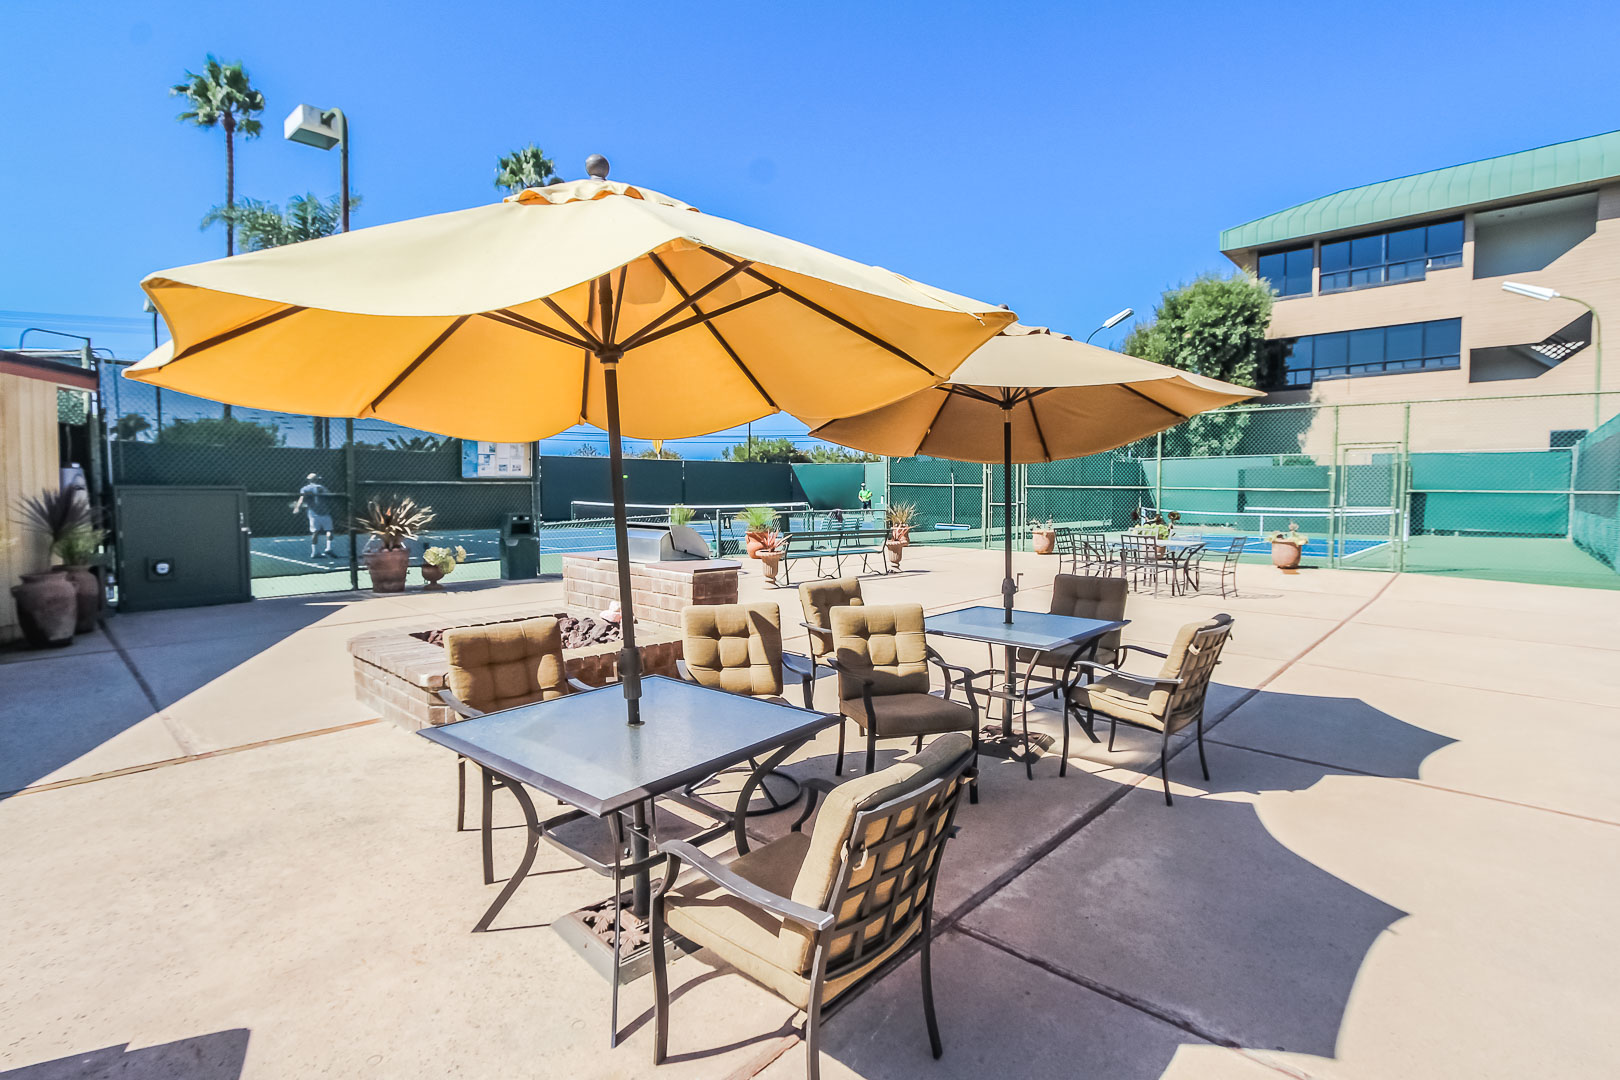 A lounging area next to the tennis courts at VRI's Winner Circle Resort in California.